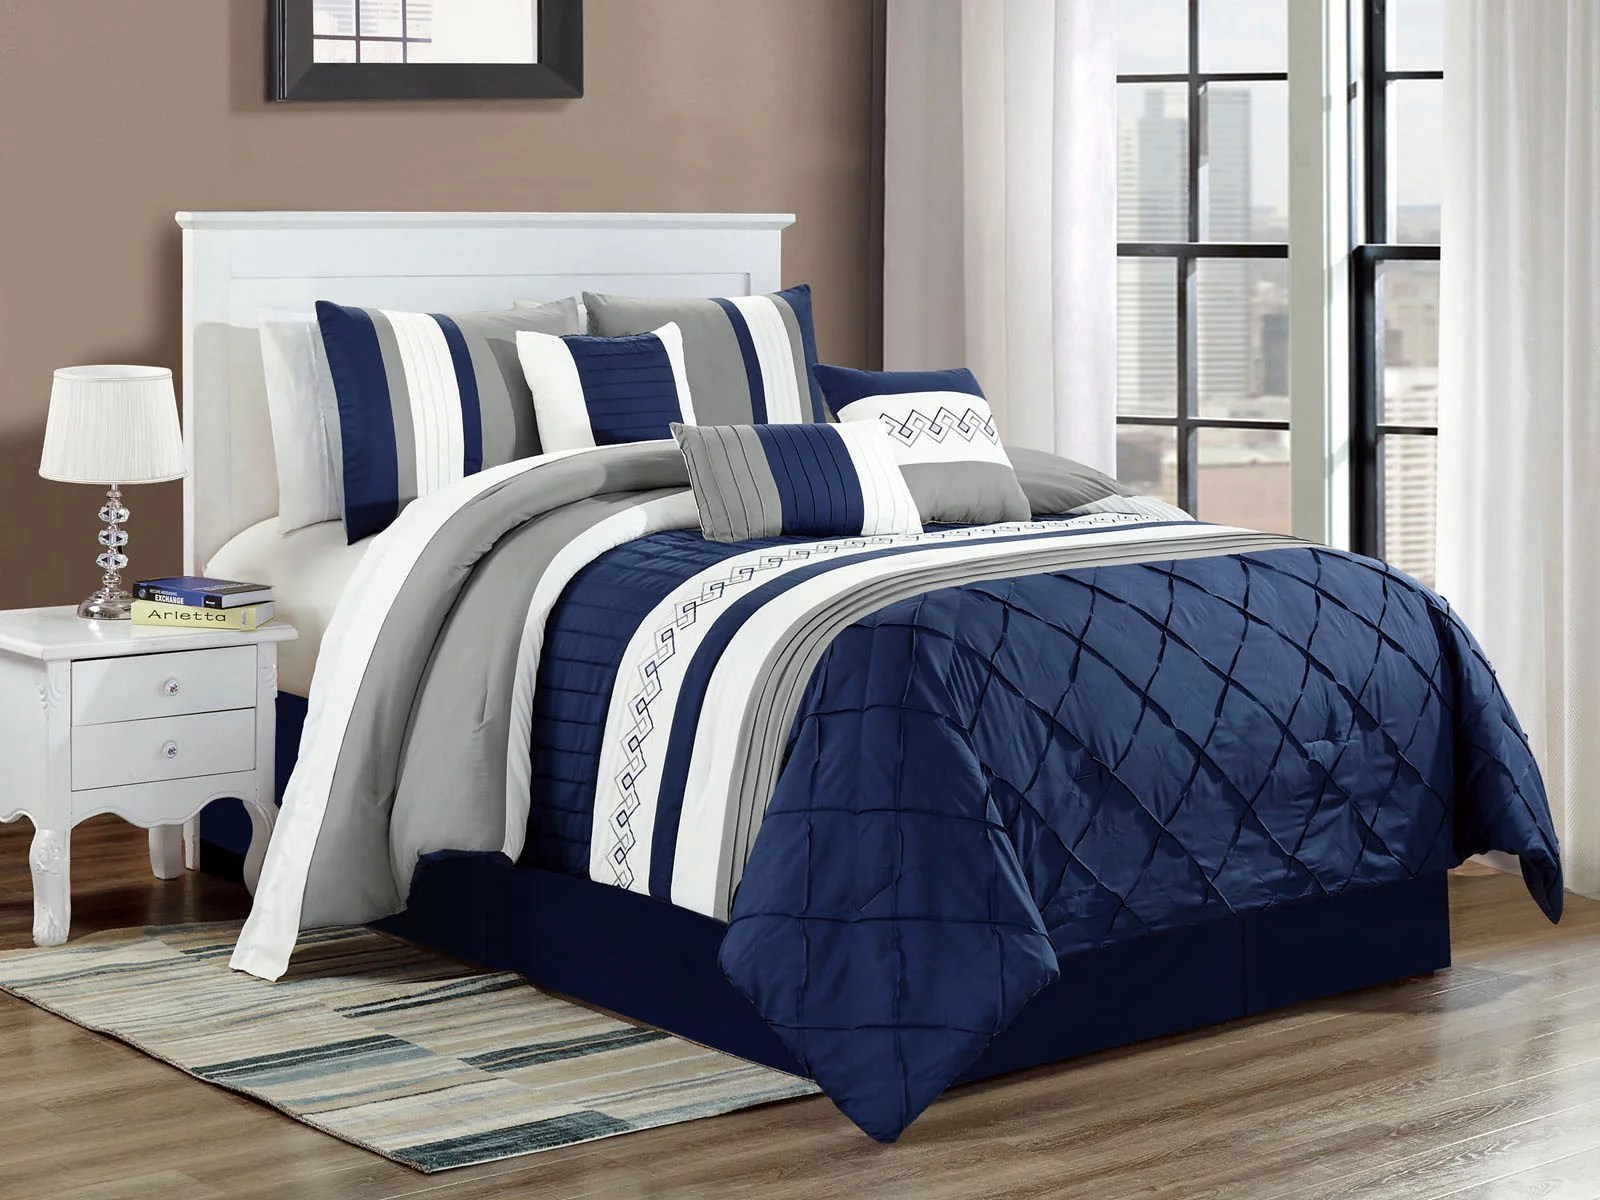 7 pc riya diamond meander greek key pleated stripe comforter set navy blue white gray queen